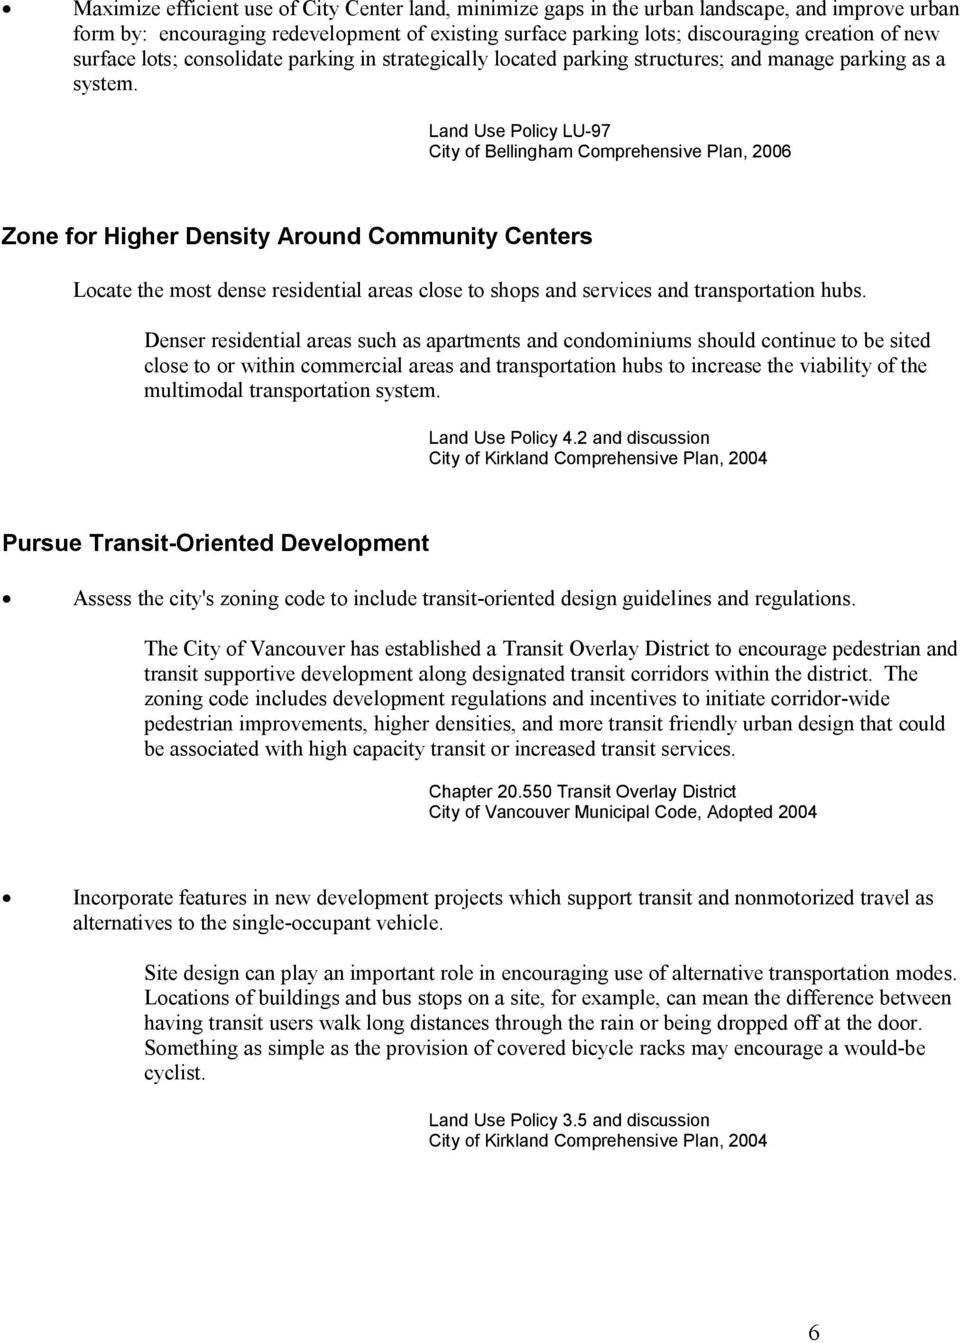 Land Use Policy LU-97 City of Bellingham Comprehensive Plan, 2006 Zone for Higher Density Around Community Centers Locate the most dense residential areas close to shops and services and